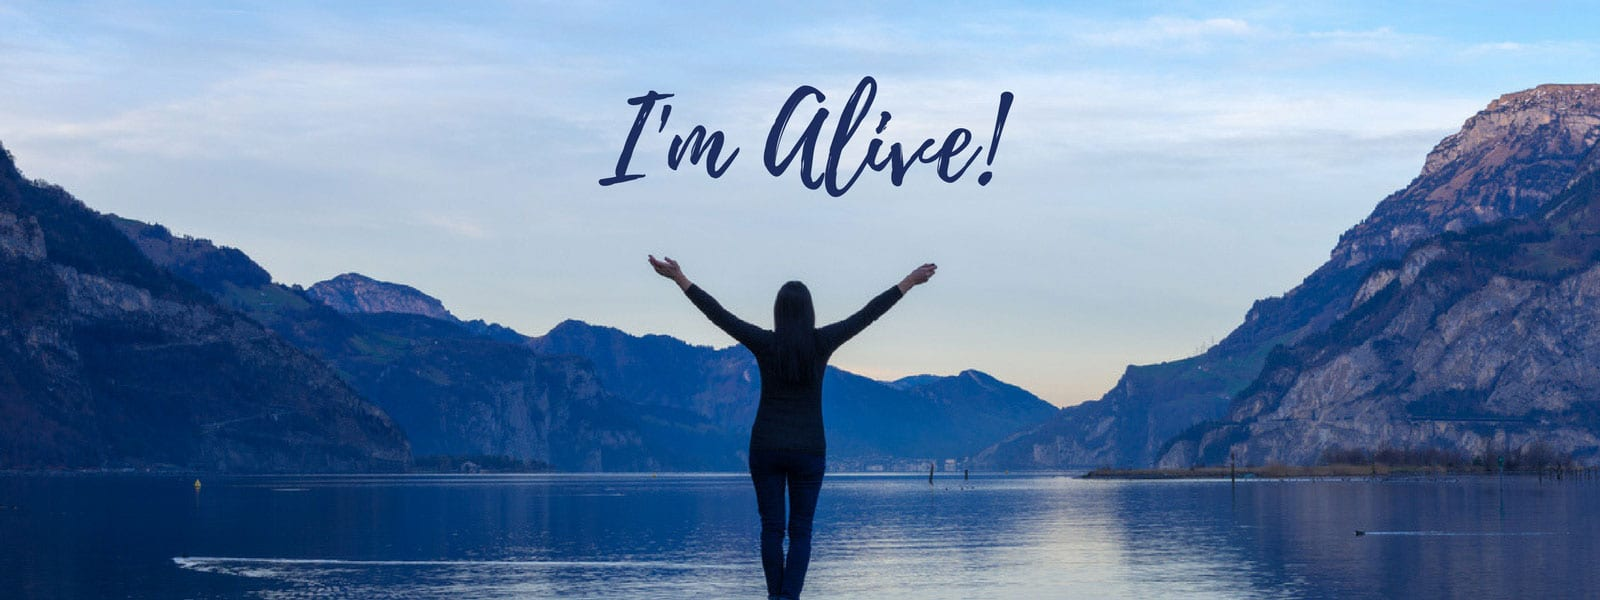 I'm Alive - Drug Alcohol treatment rehab story blog - Schick Shadel Hospital - Woman with arms raised on dock looking towards mountains and lake